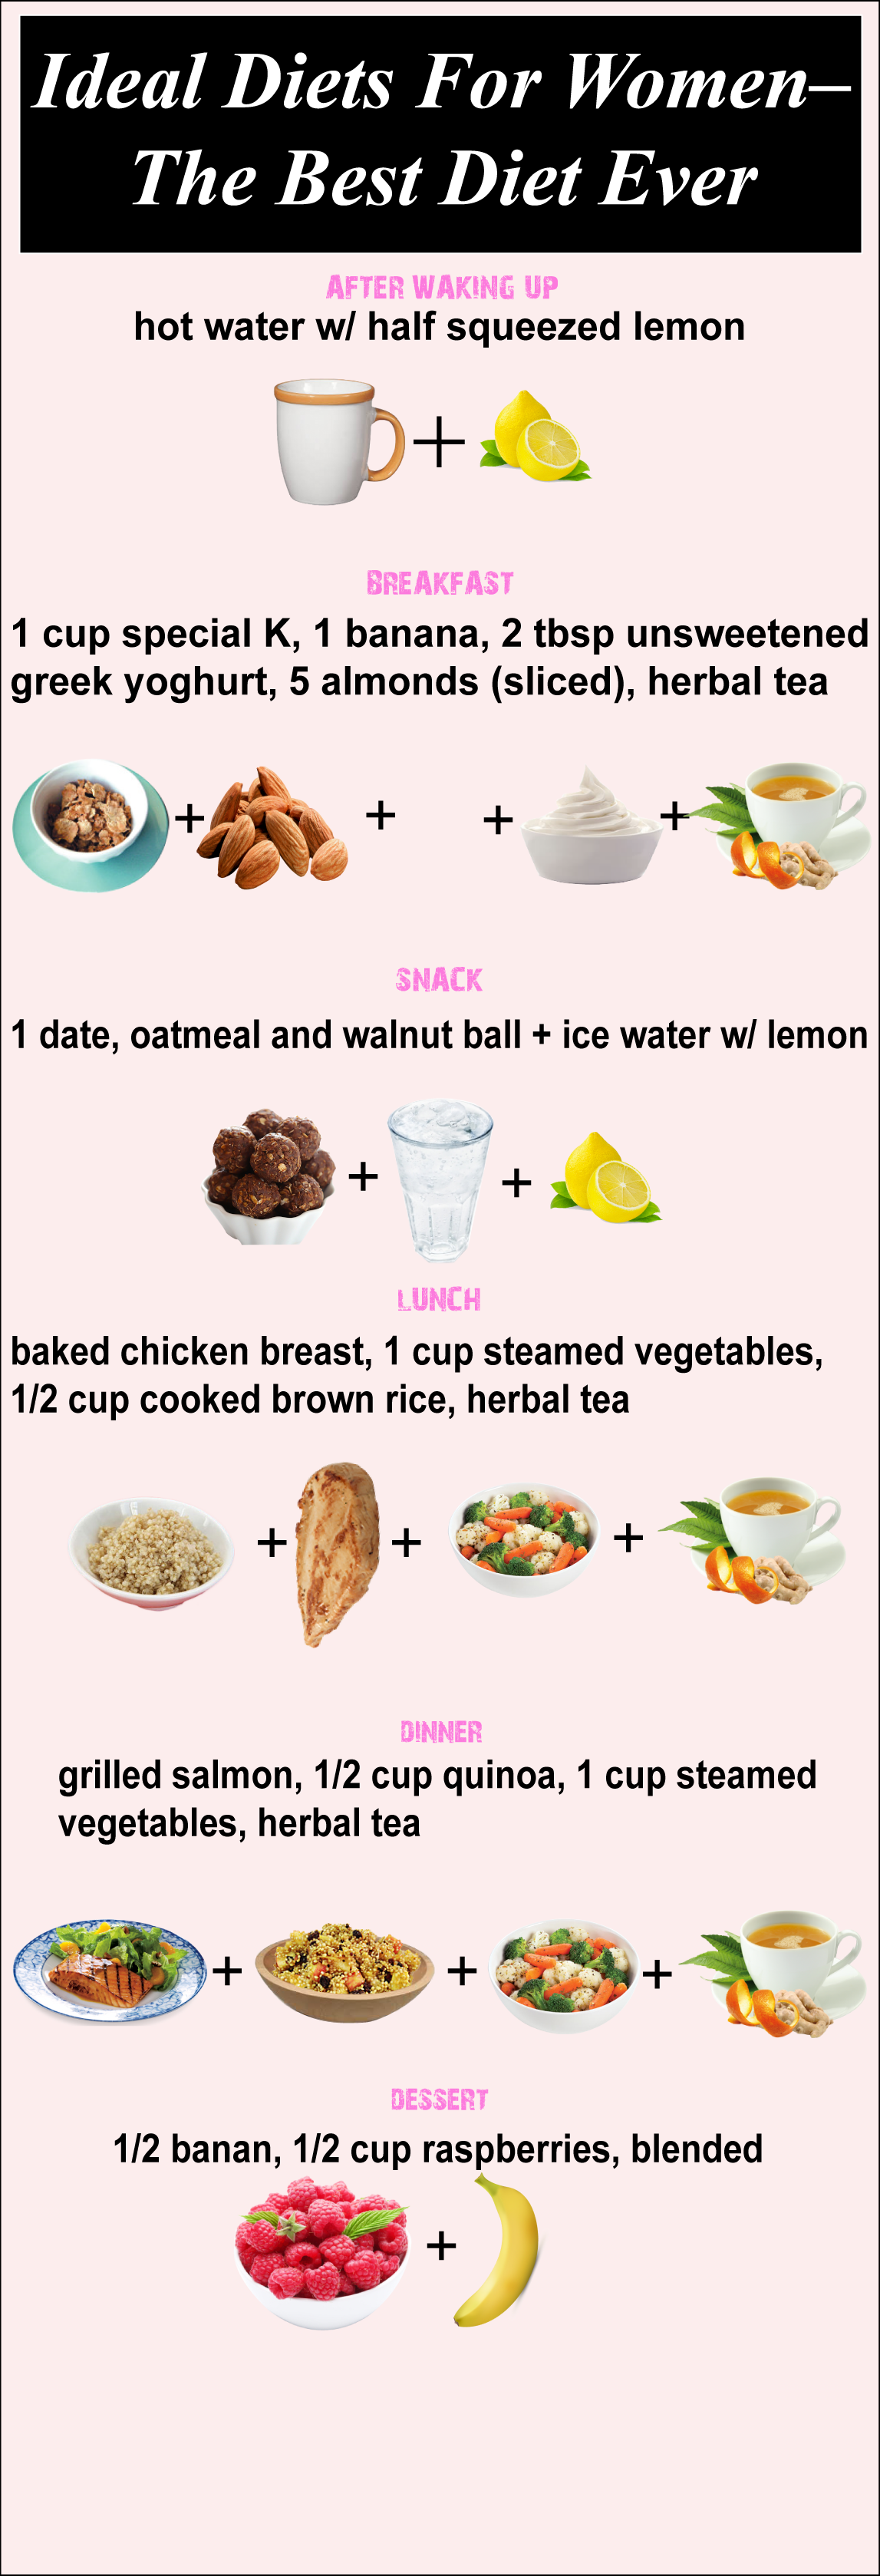 What Is Considered An Ideal Diet If You Are Looking For An Ideal